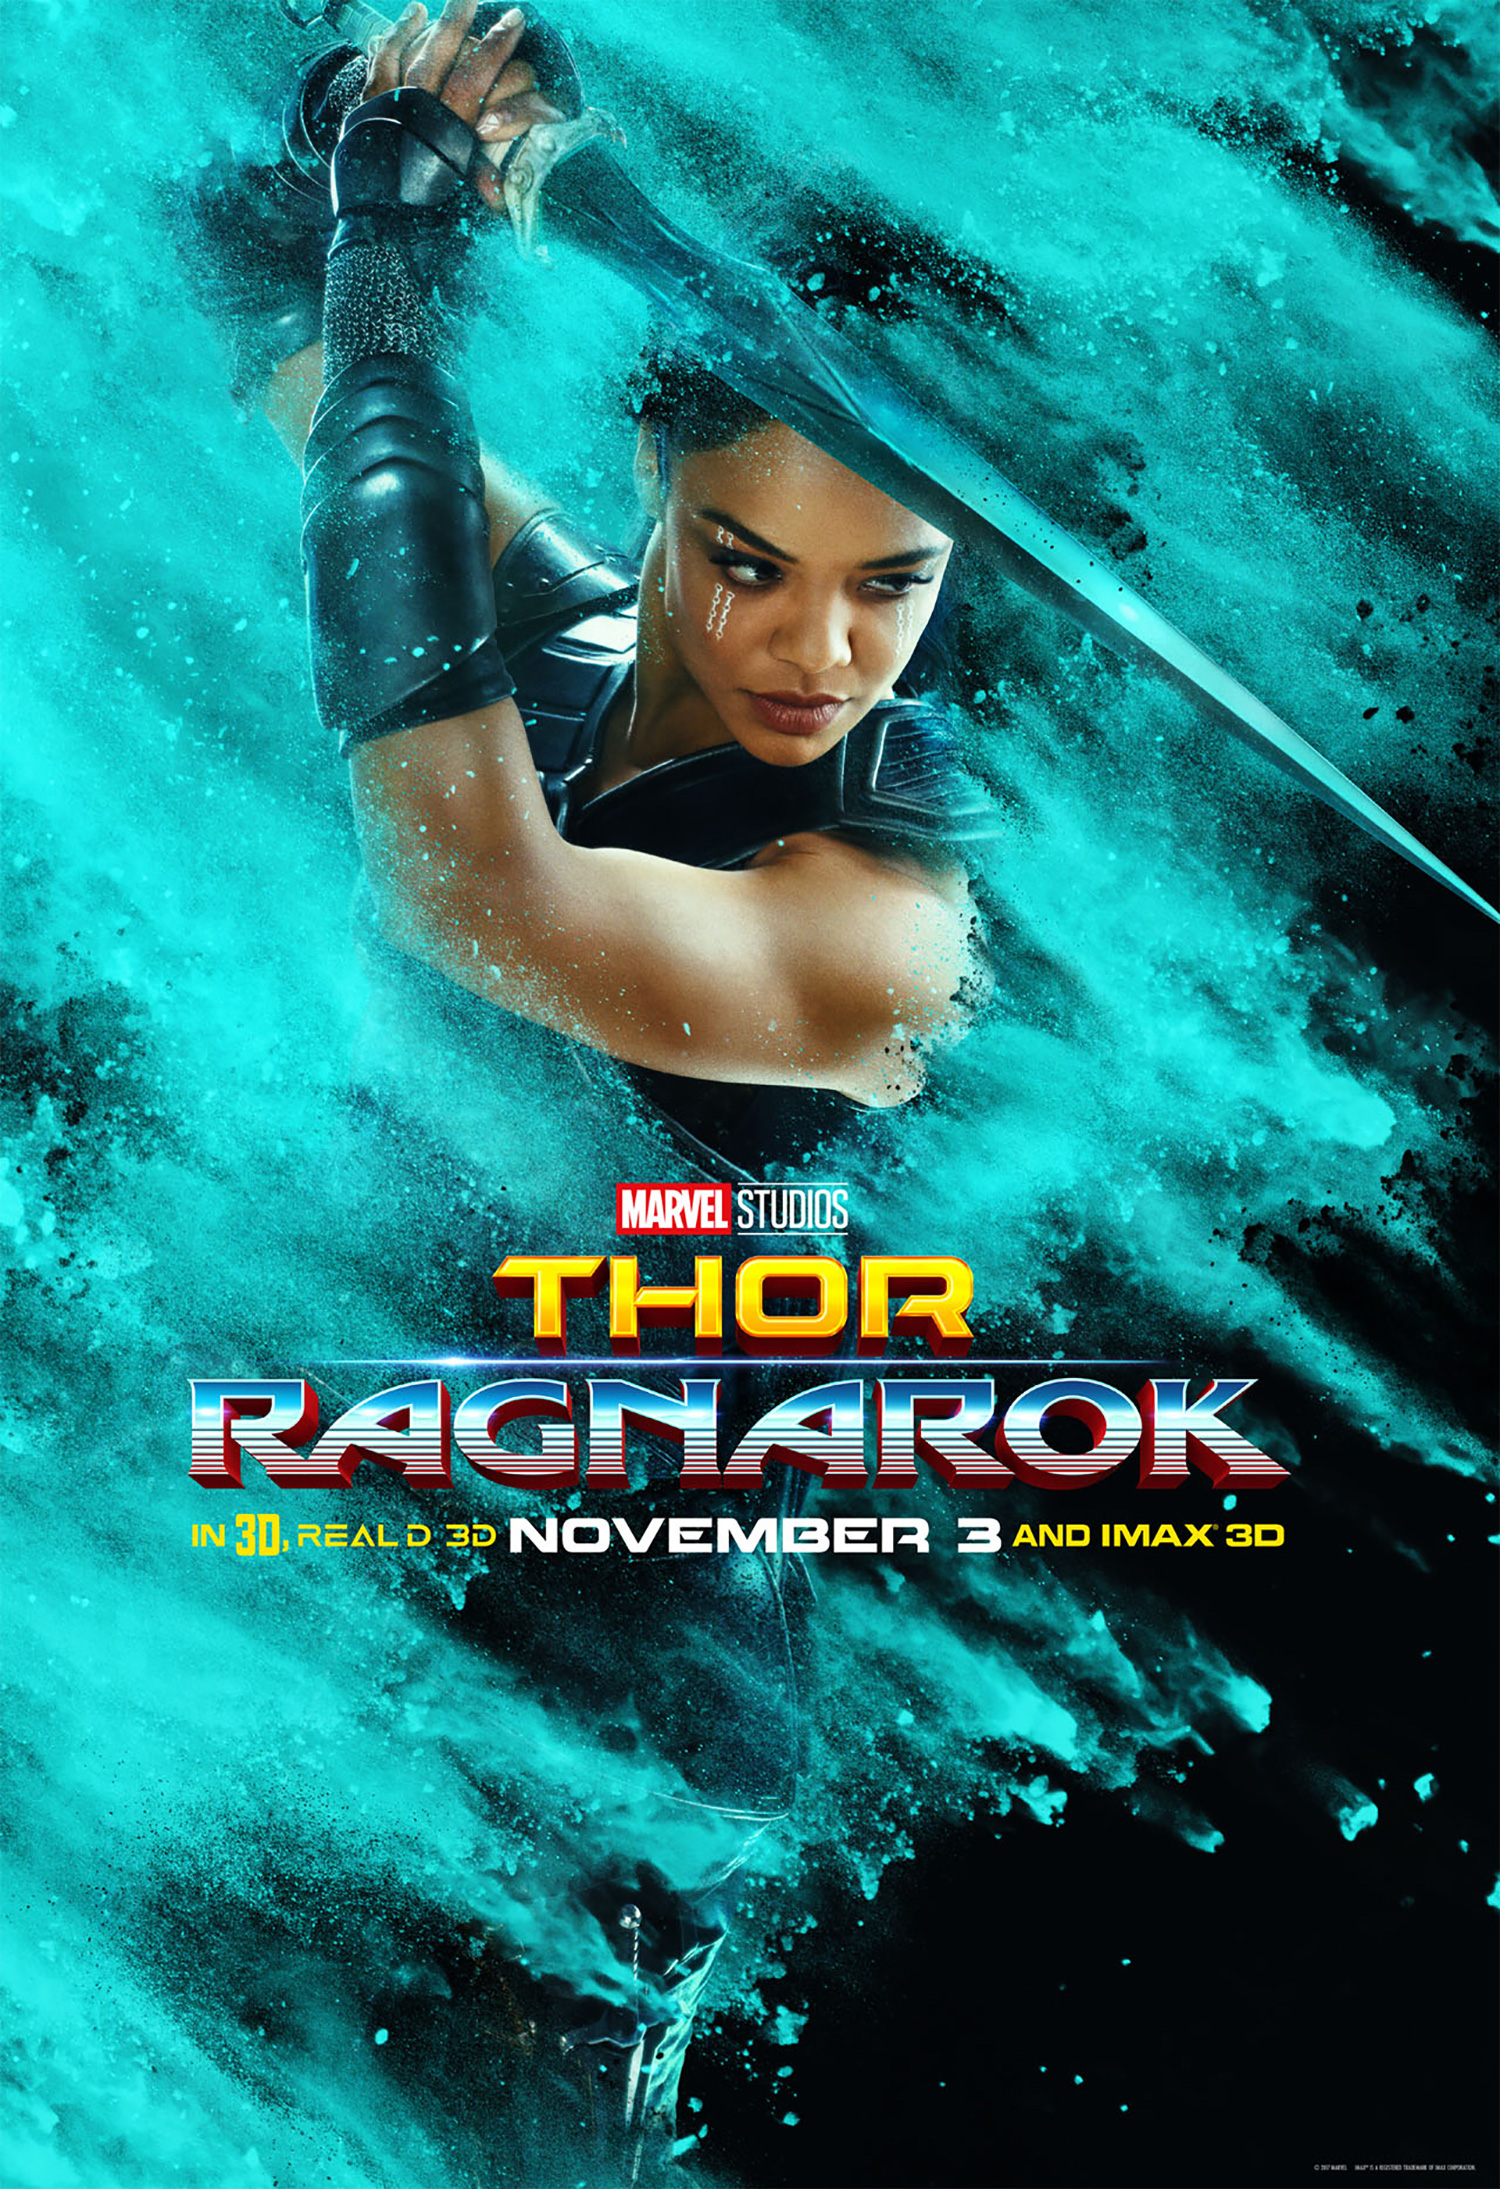 Thor: Ragnarok - Character Poster - Valkyrie